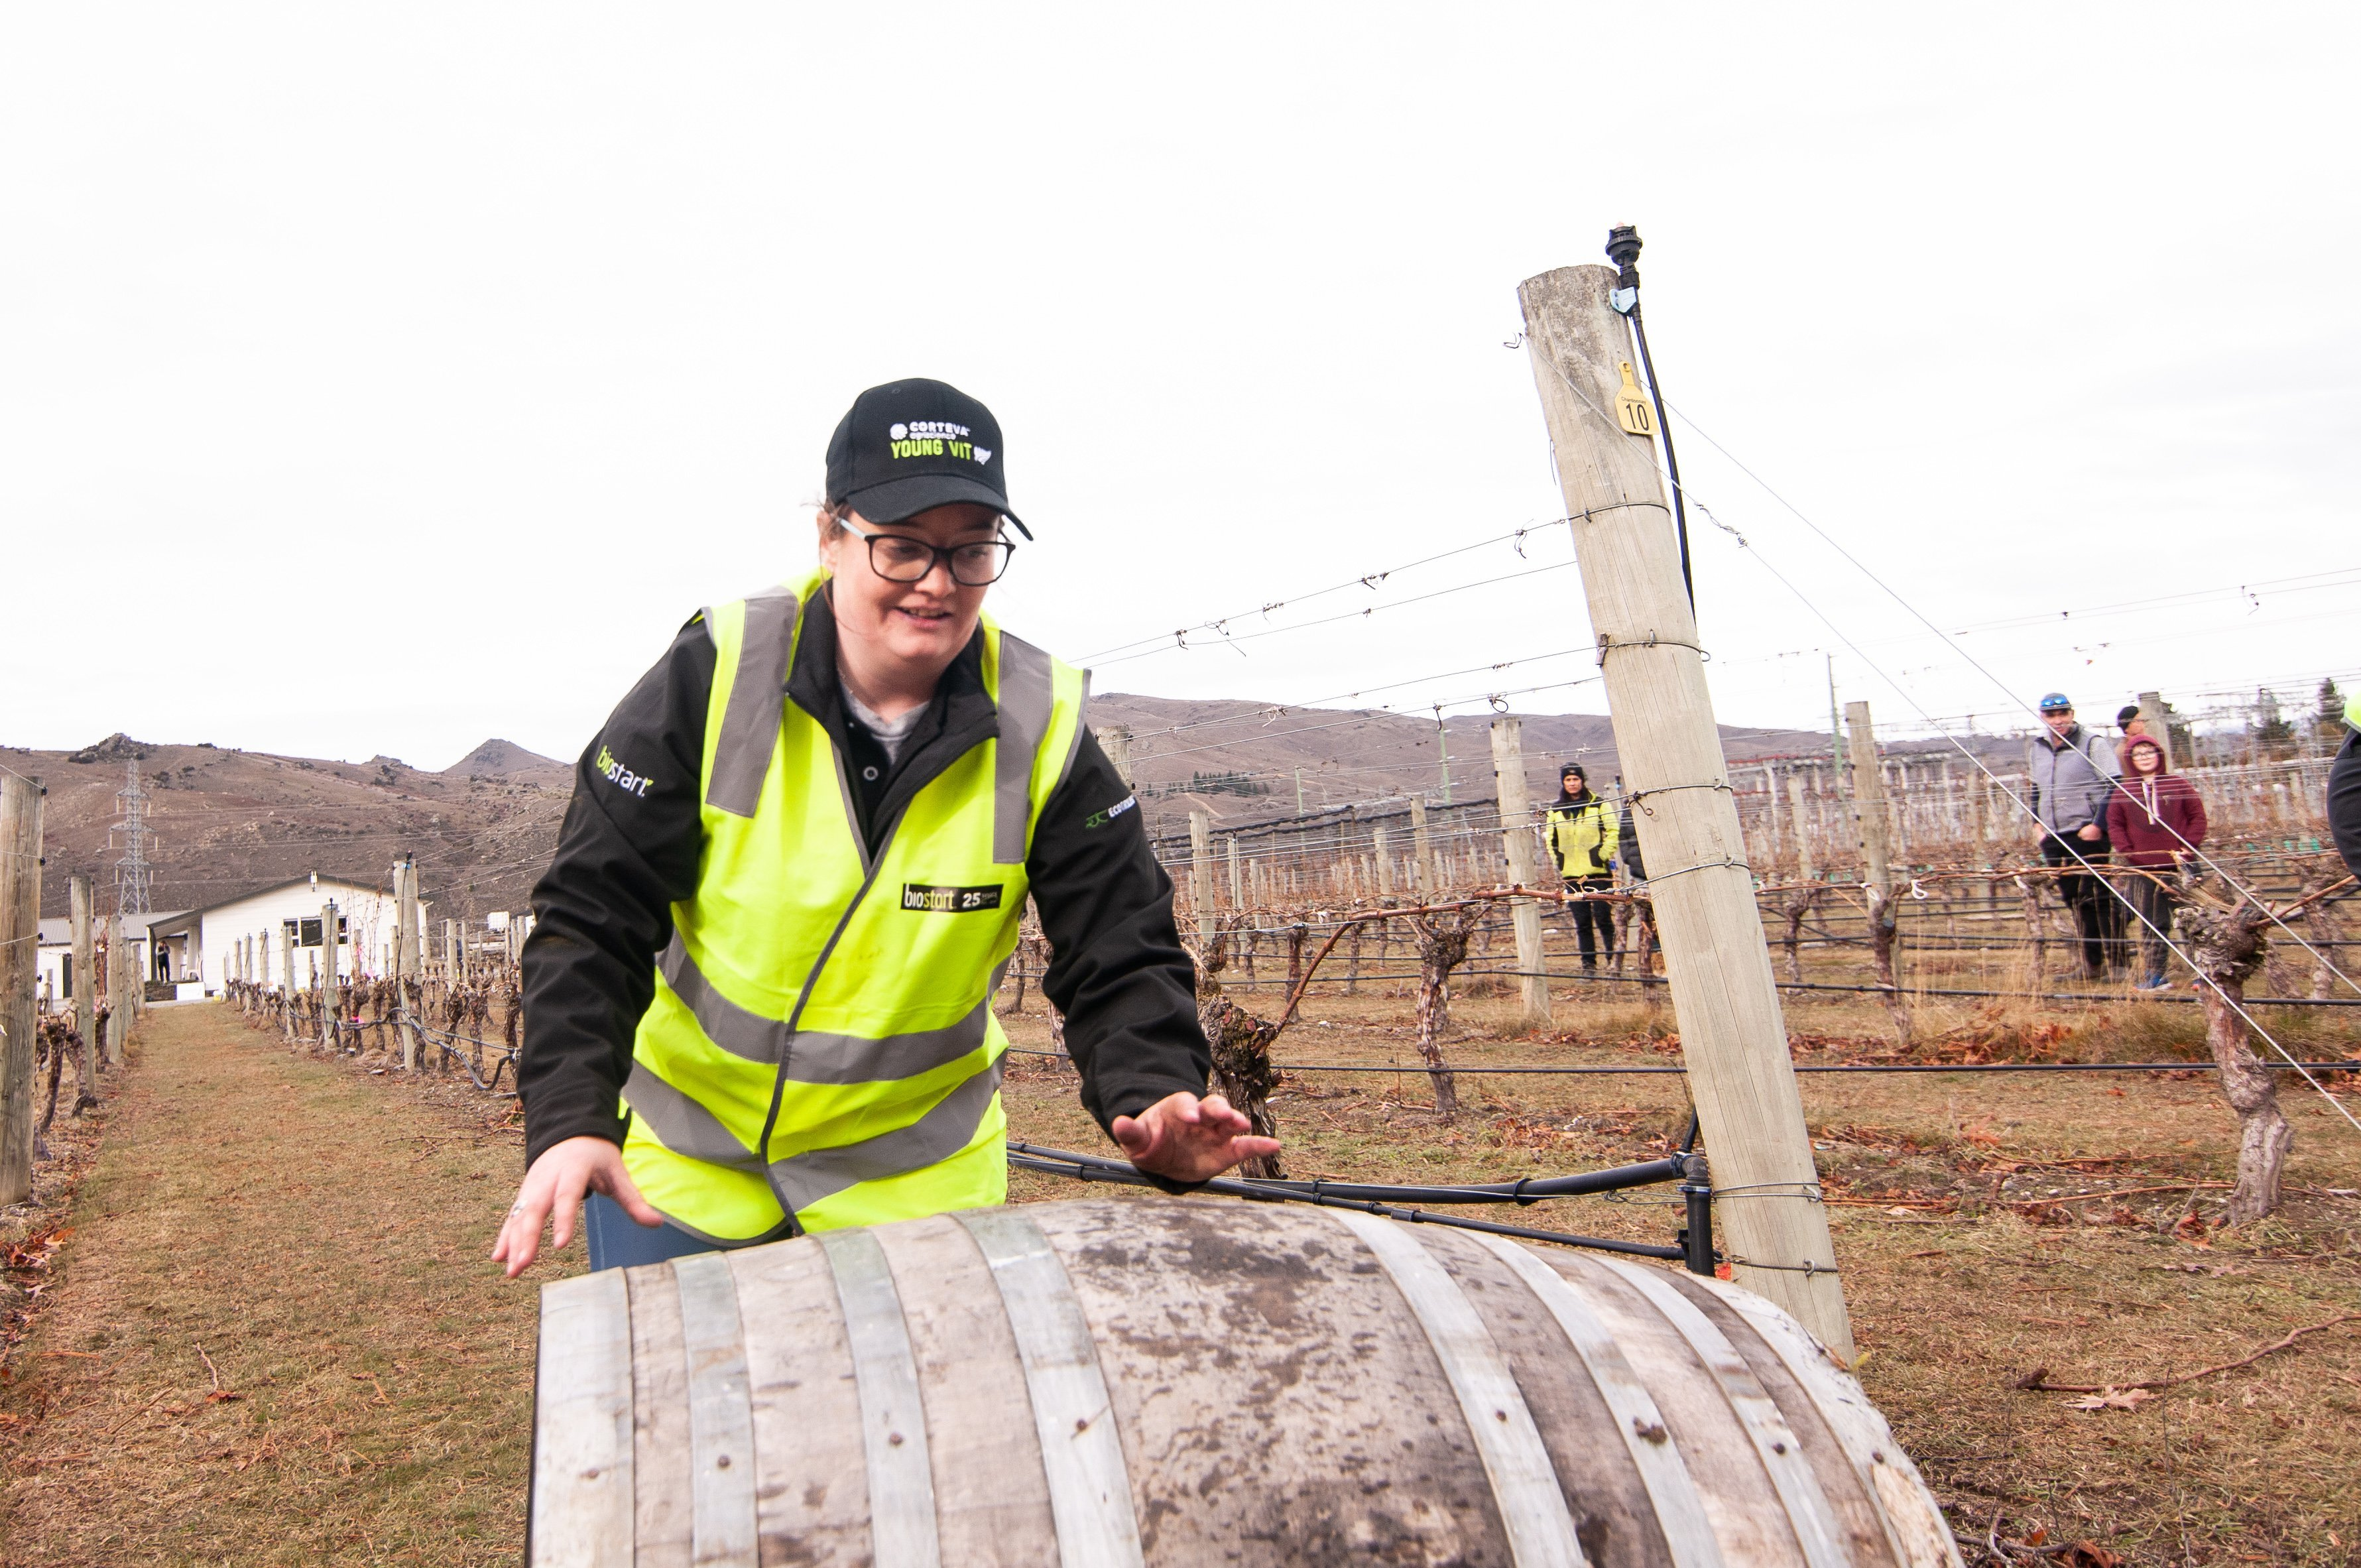 Chard Farm assistant manager Katrina Jackson rushes her wine barrel to the end of the vines...